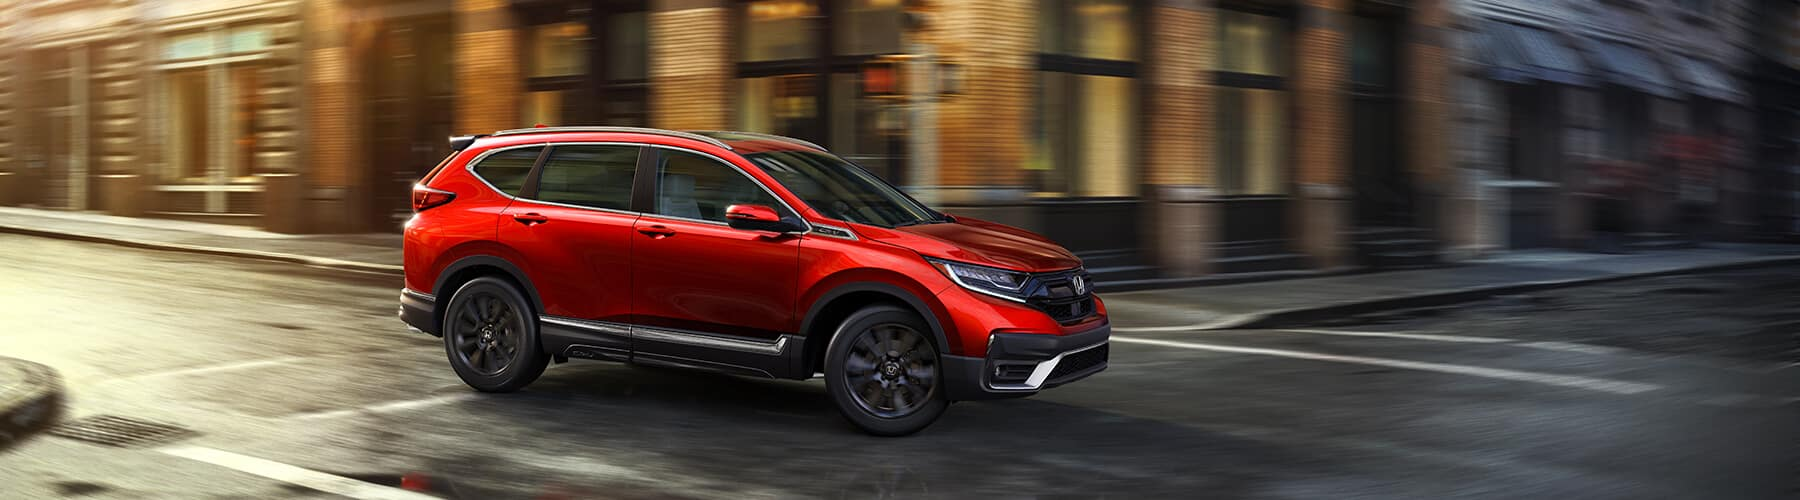 2020 Honda CR-V Slider